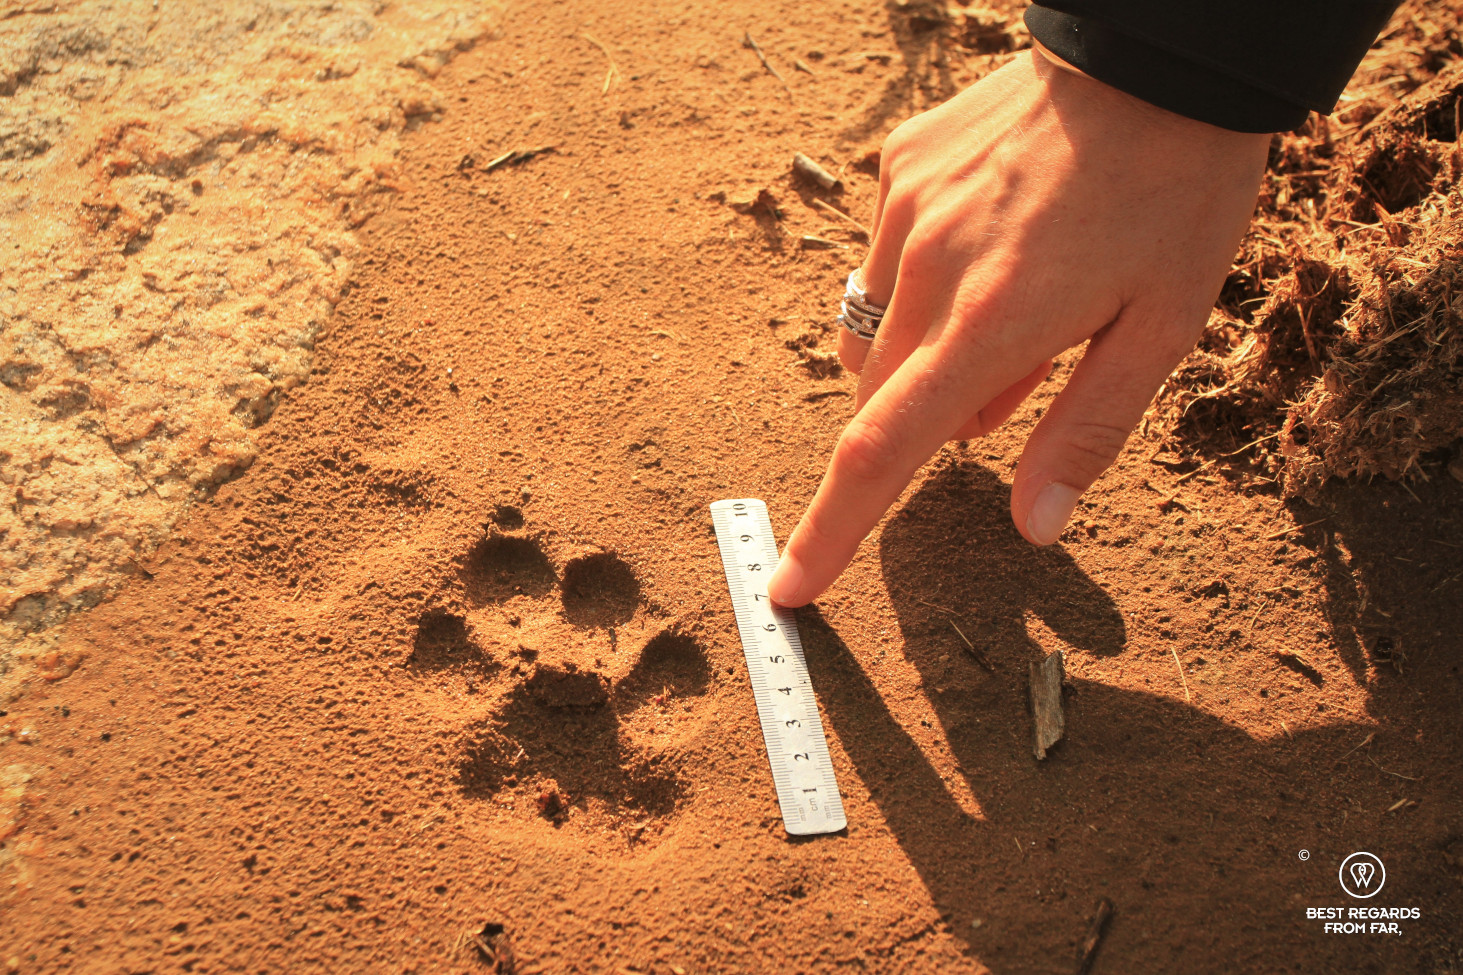 Measuring a hyaena track in the red mud with a ruler